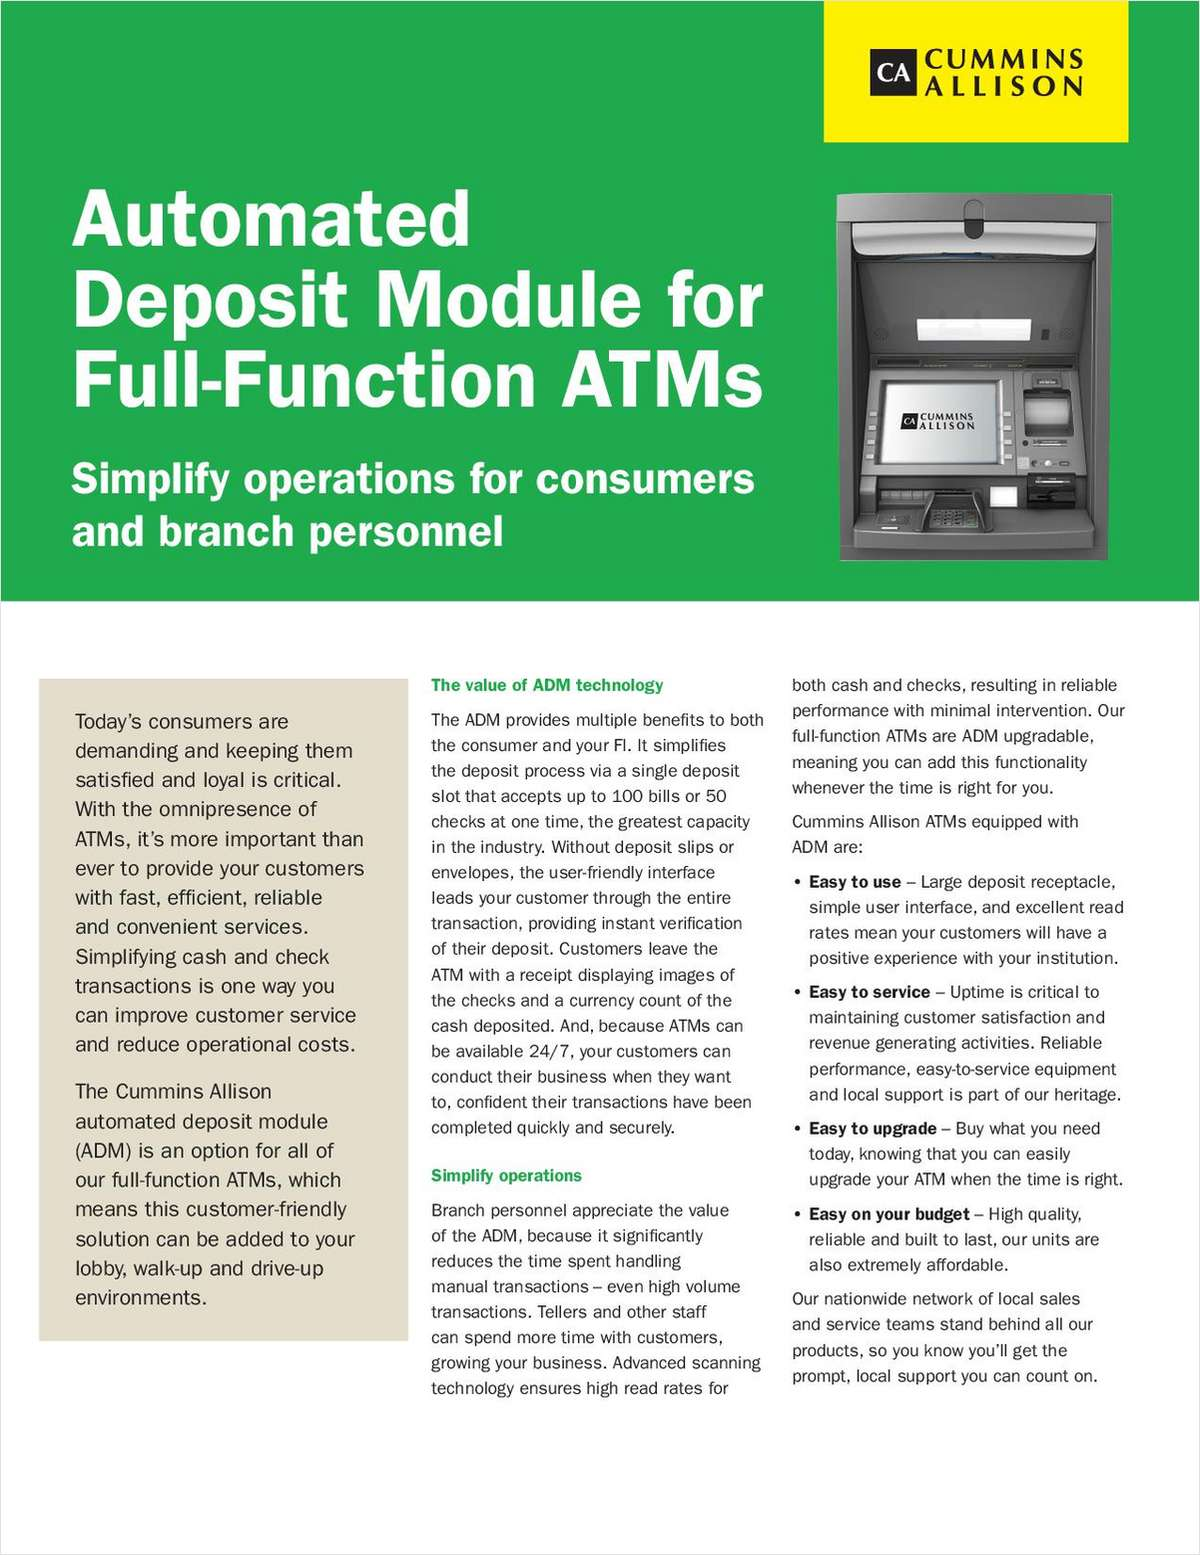 Automated Deposit Module for Full-Function ATMs